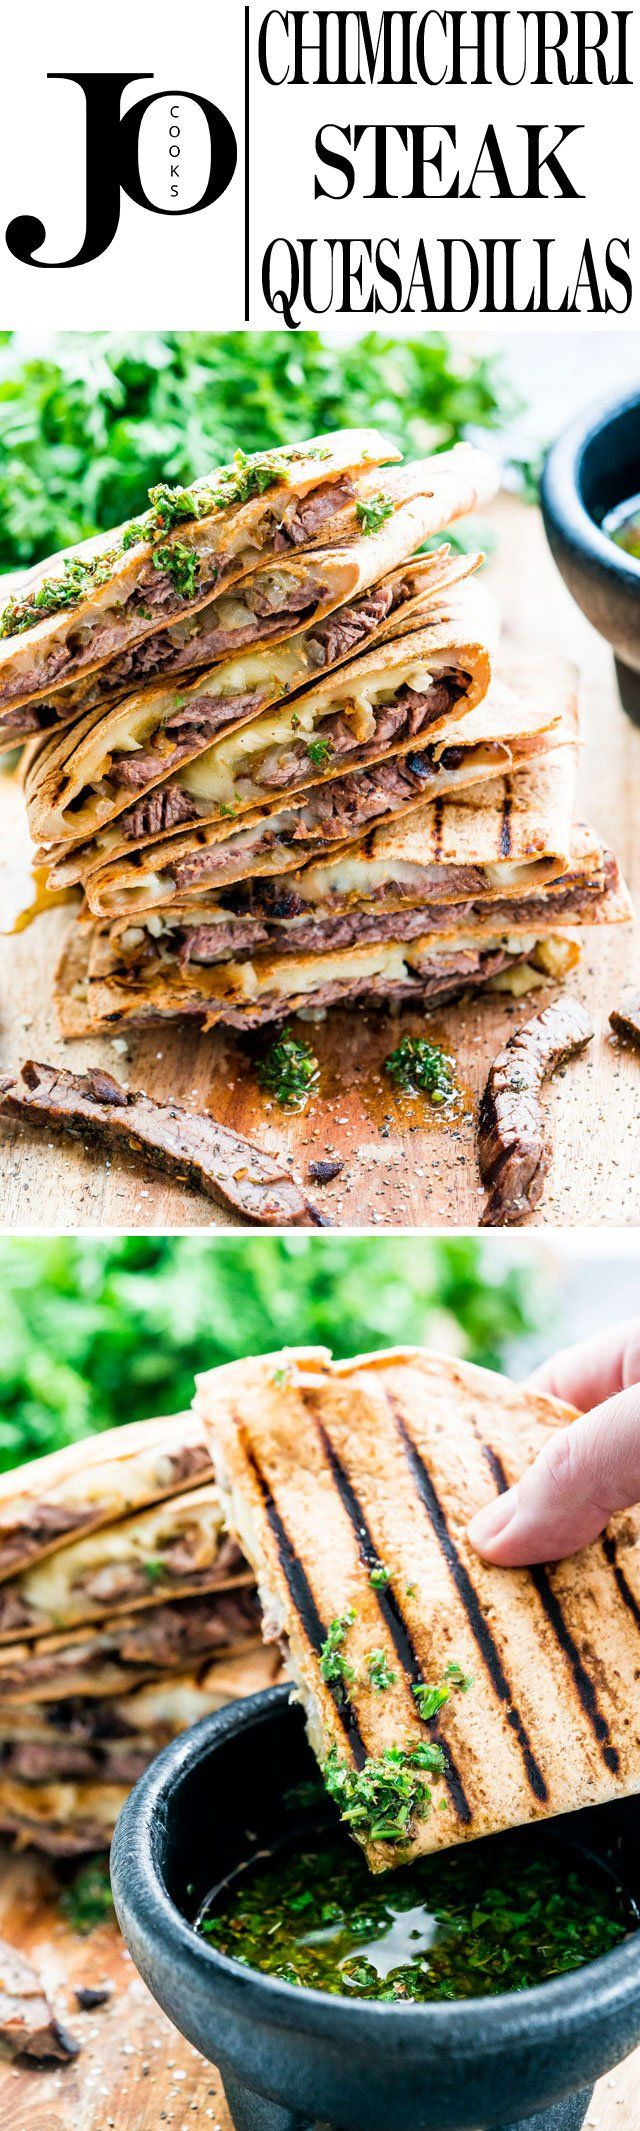 These Grilled Chimichurri Steak Quesadillas are just in time for your Memorial Day weekend party! Marinated steak in a yummy chimichurri sauce, Monterey Jack cheese and sautéed onions enclosed in a @Flatoutbread light flatbread, then grilled to perfection! This is how you make perfect quesadillas! #flatoutlove #sponsored